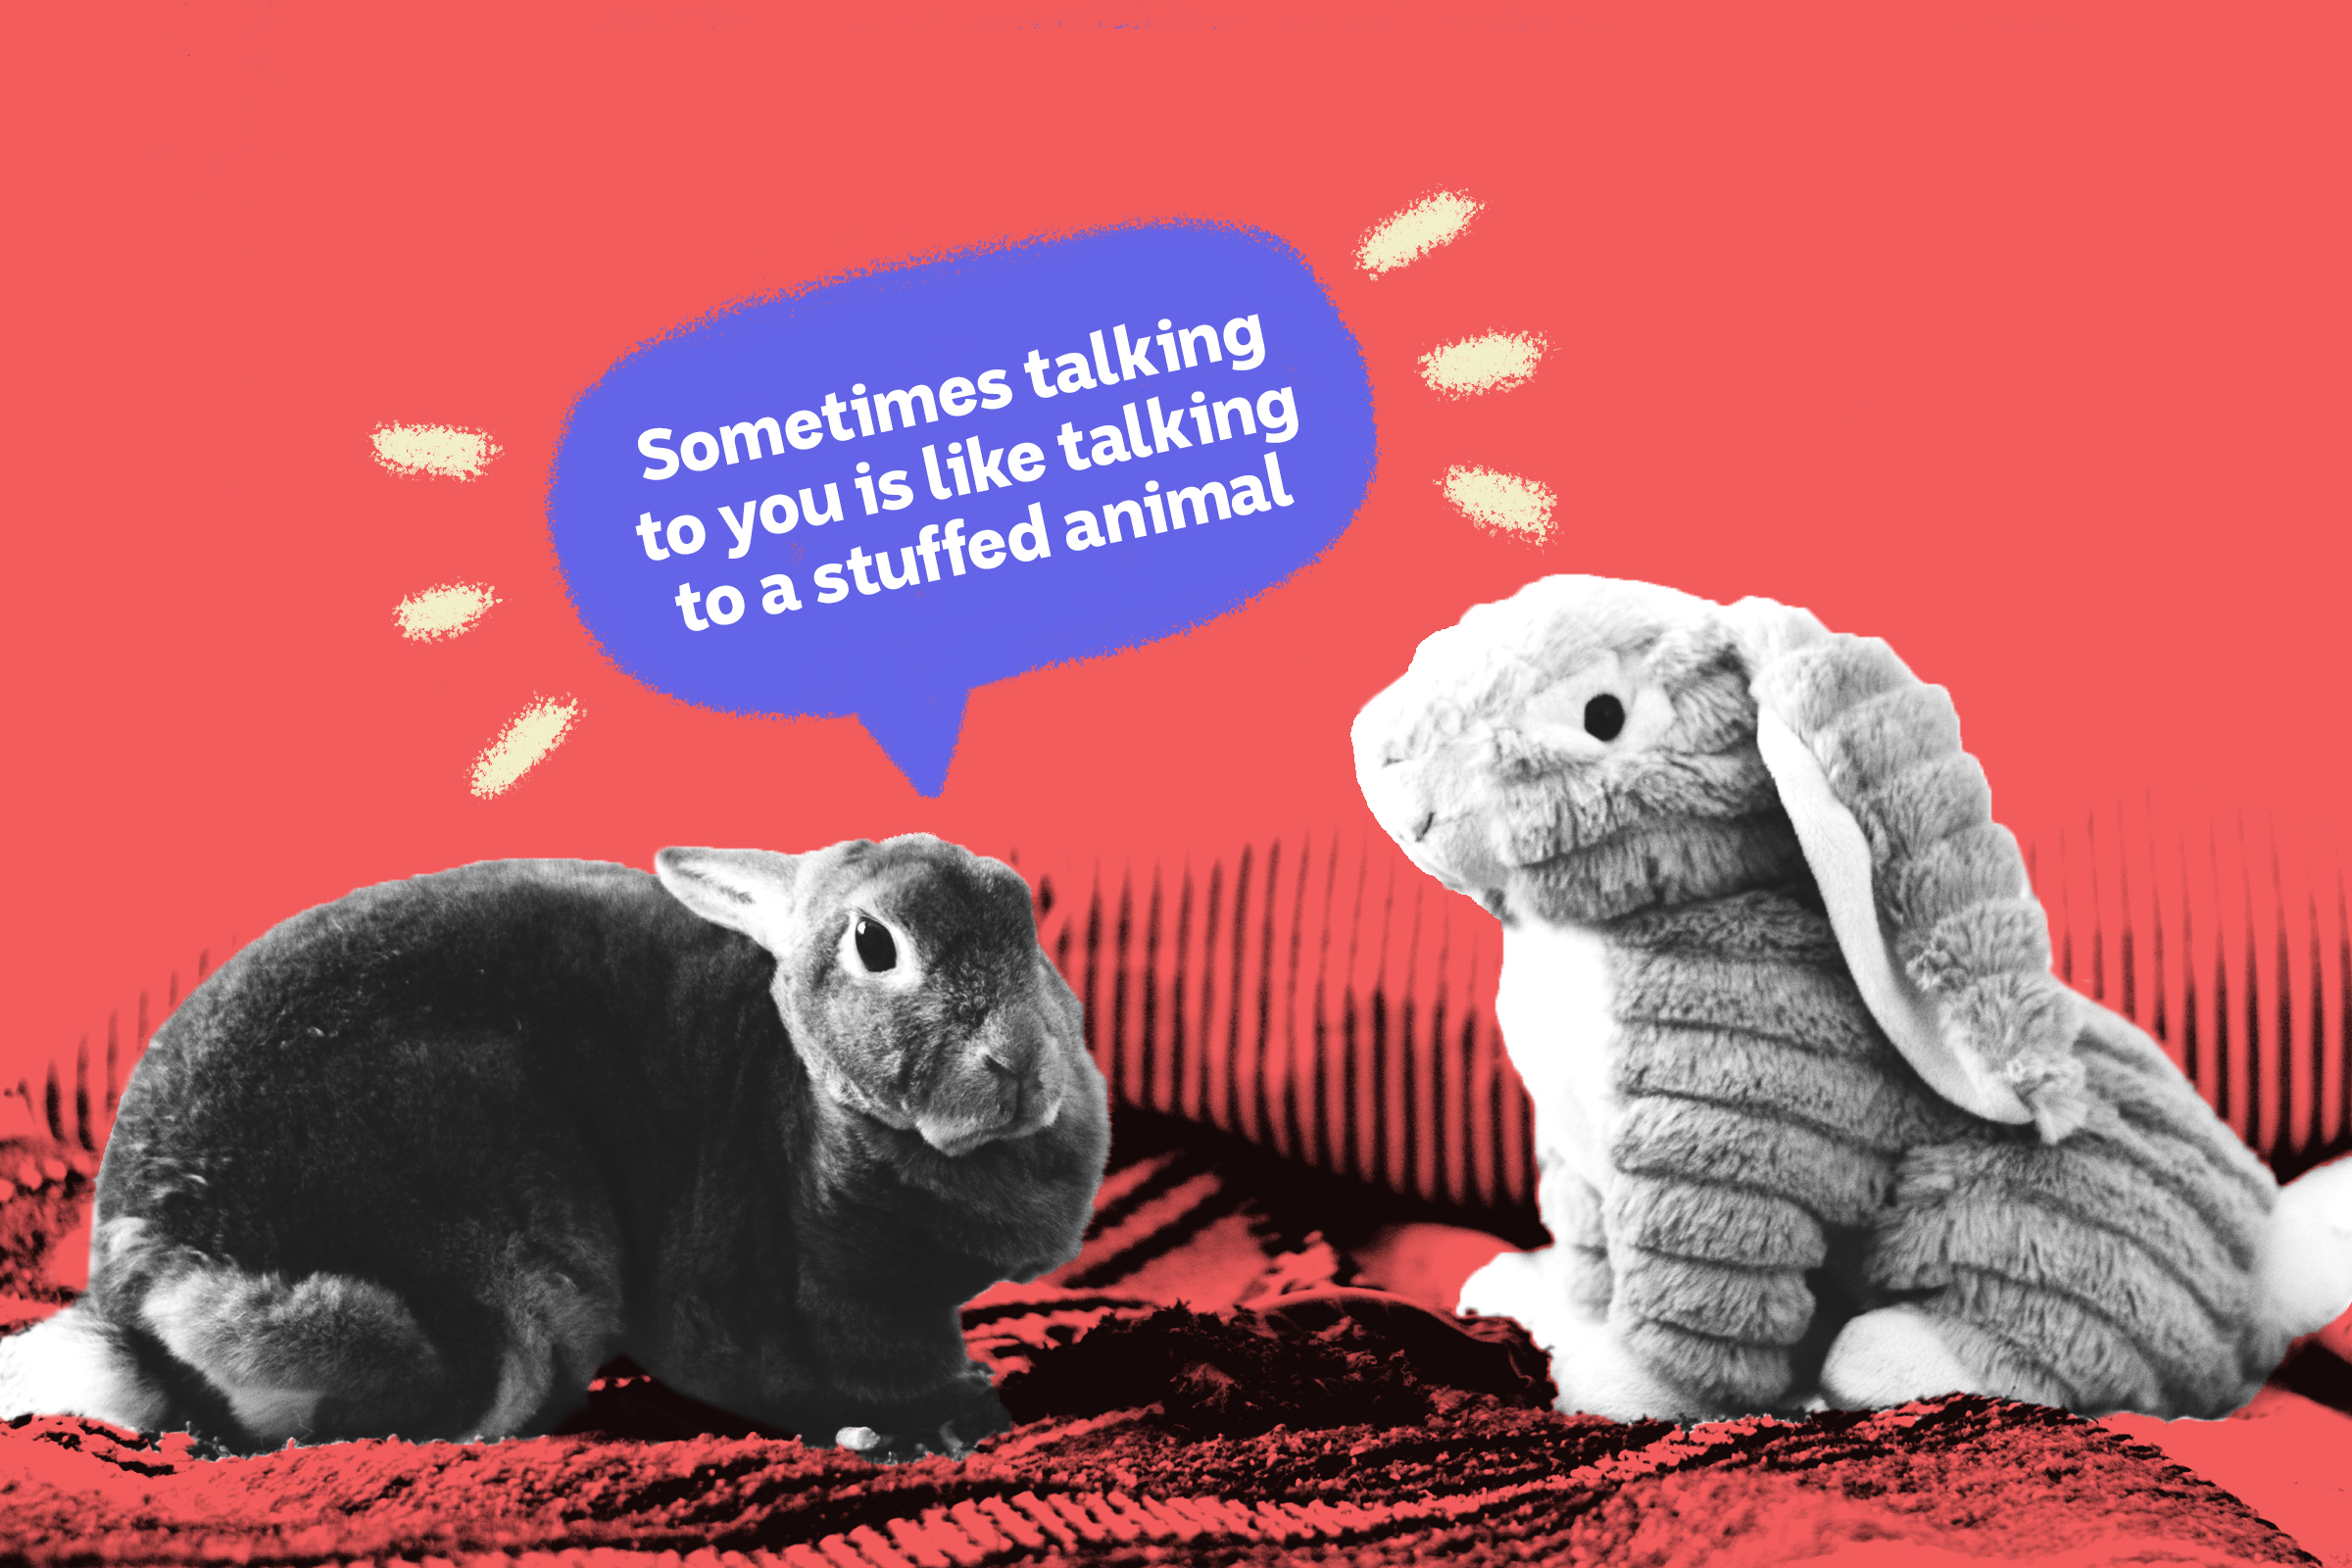 A live rabbit says to a stuffed rabbit: Sometimes talking to you is like talking to a stuffed animal